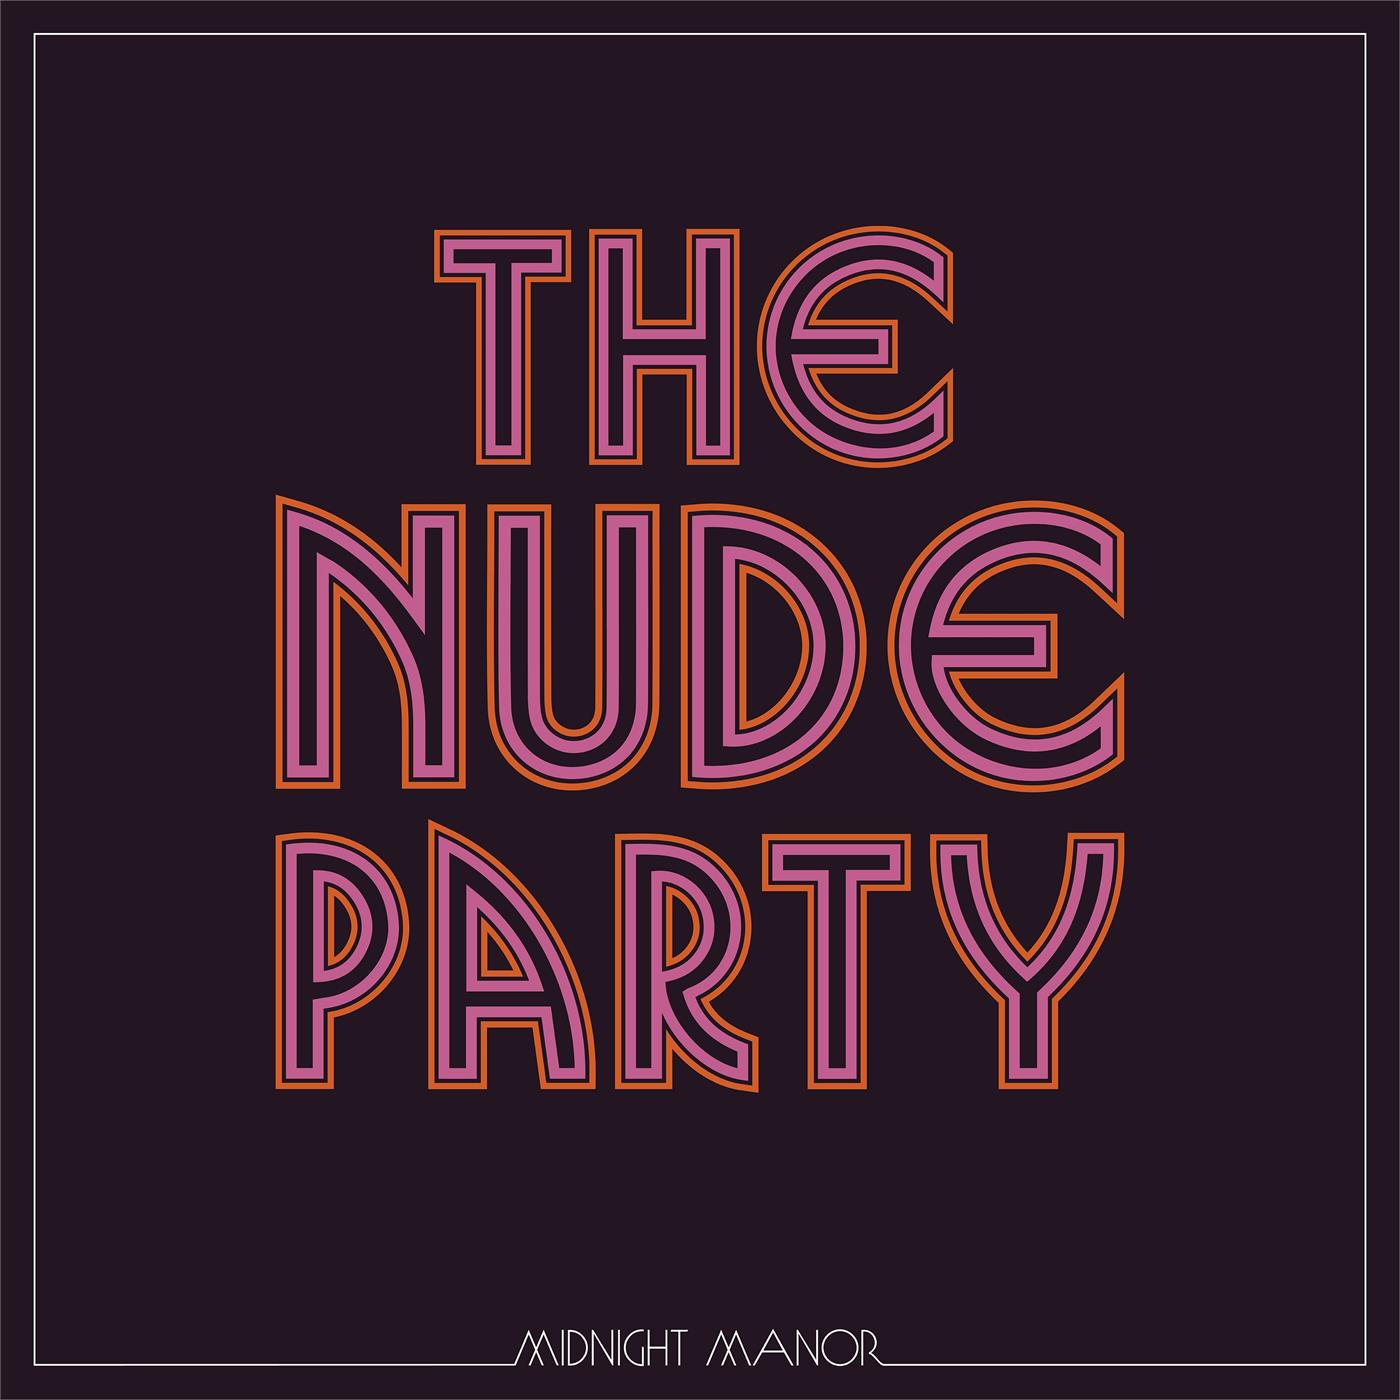 NW5433LP New West Records  The Nude Party Midnight Manor - LTD (LP)